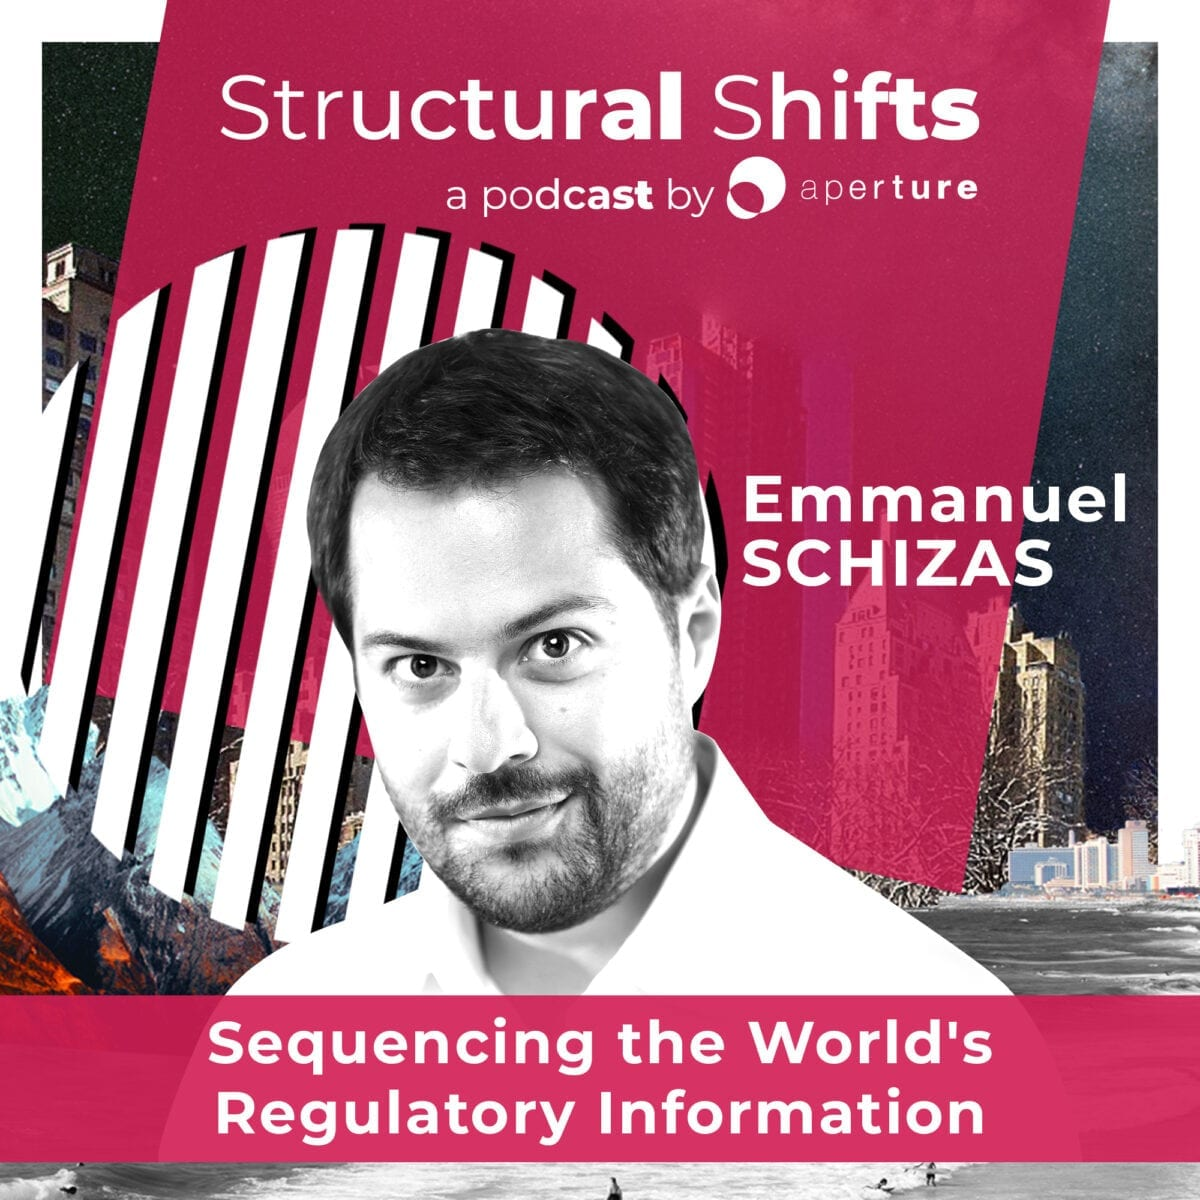 Sequencing the World's Regulatory Information (#35)